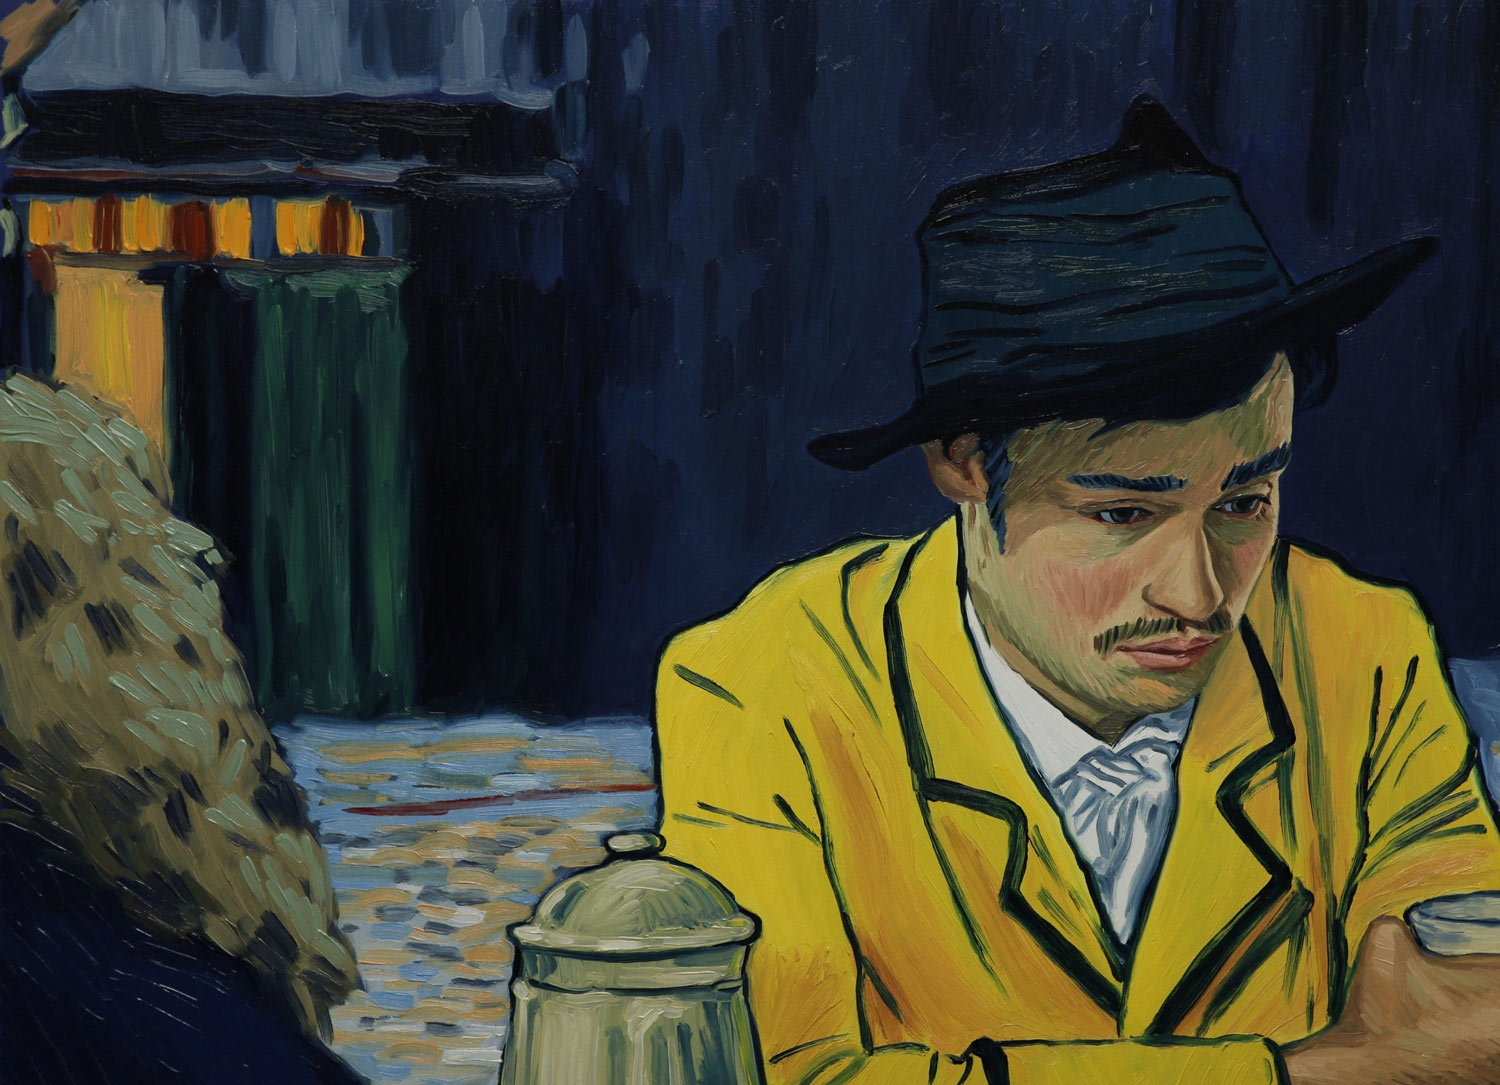 11-Animated Oil Paintings to tell the story of Loving Vincent Van Gogh